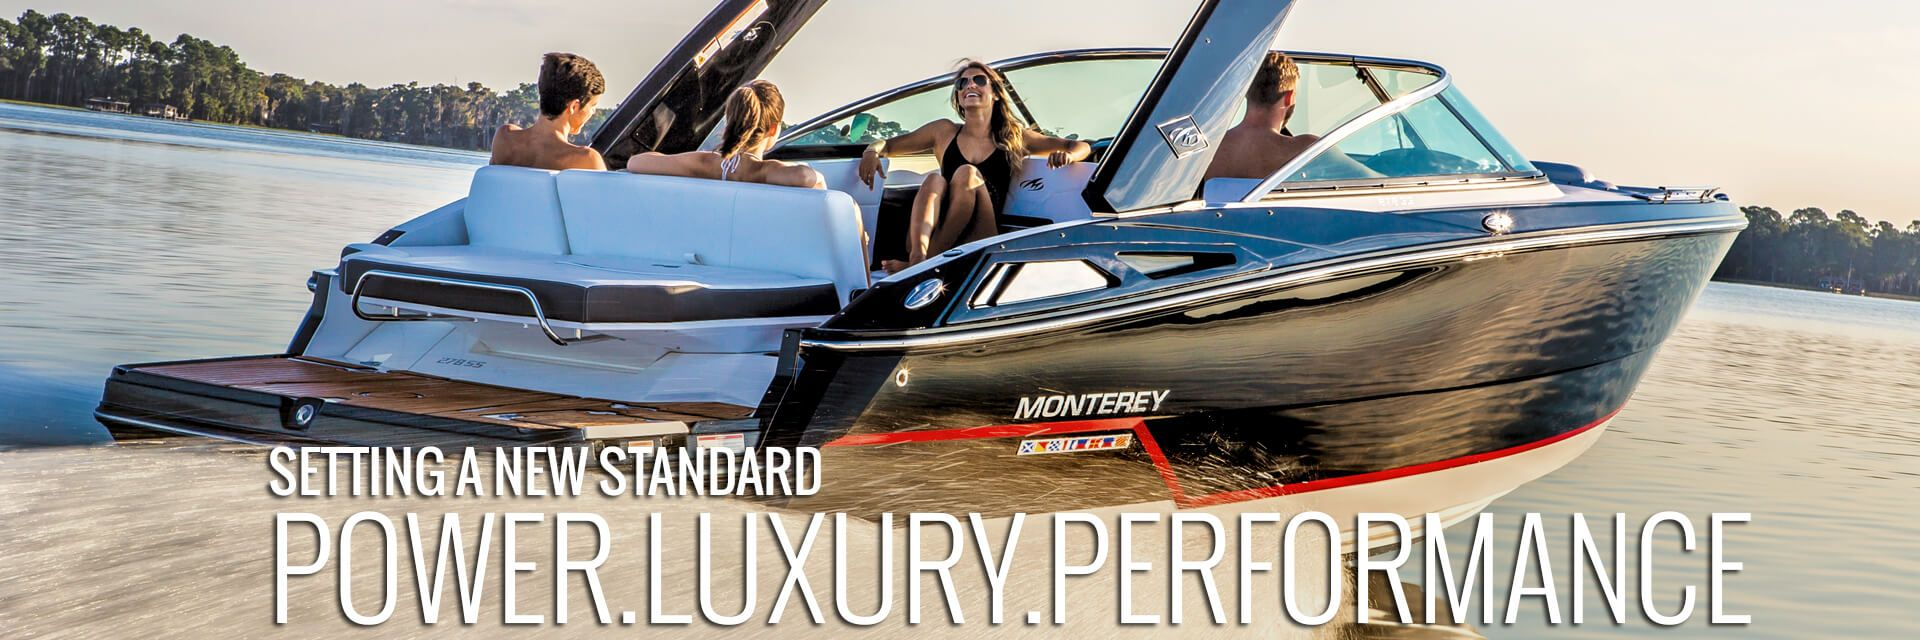 Lewis Boats & Powersports - Offering New & Used Barletta